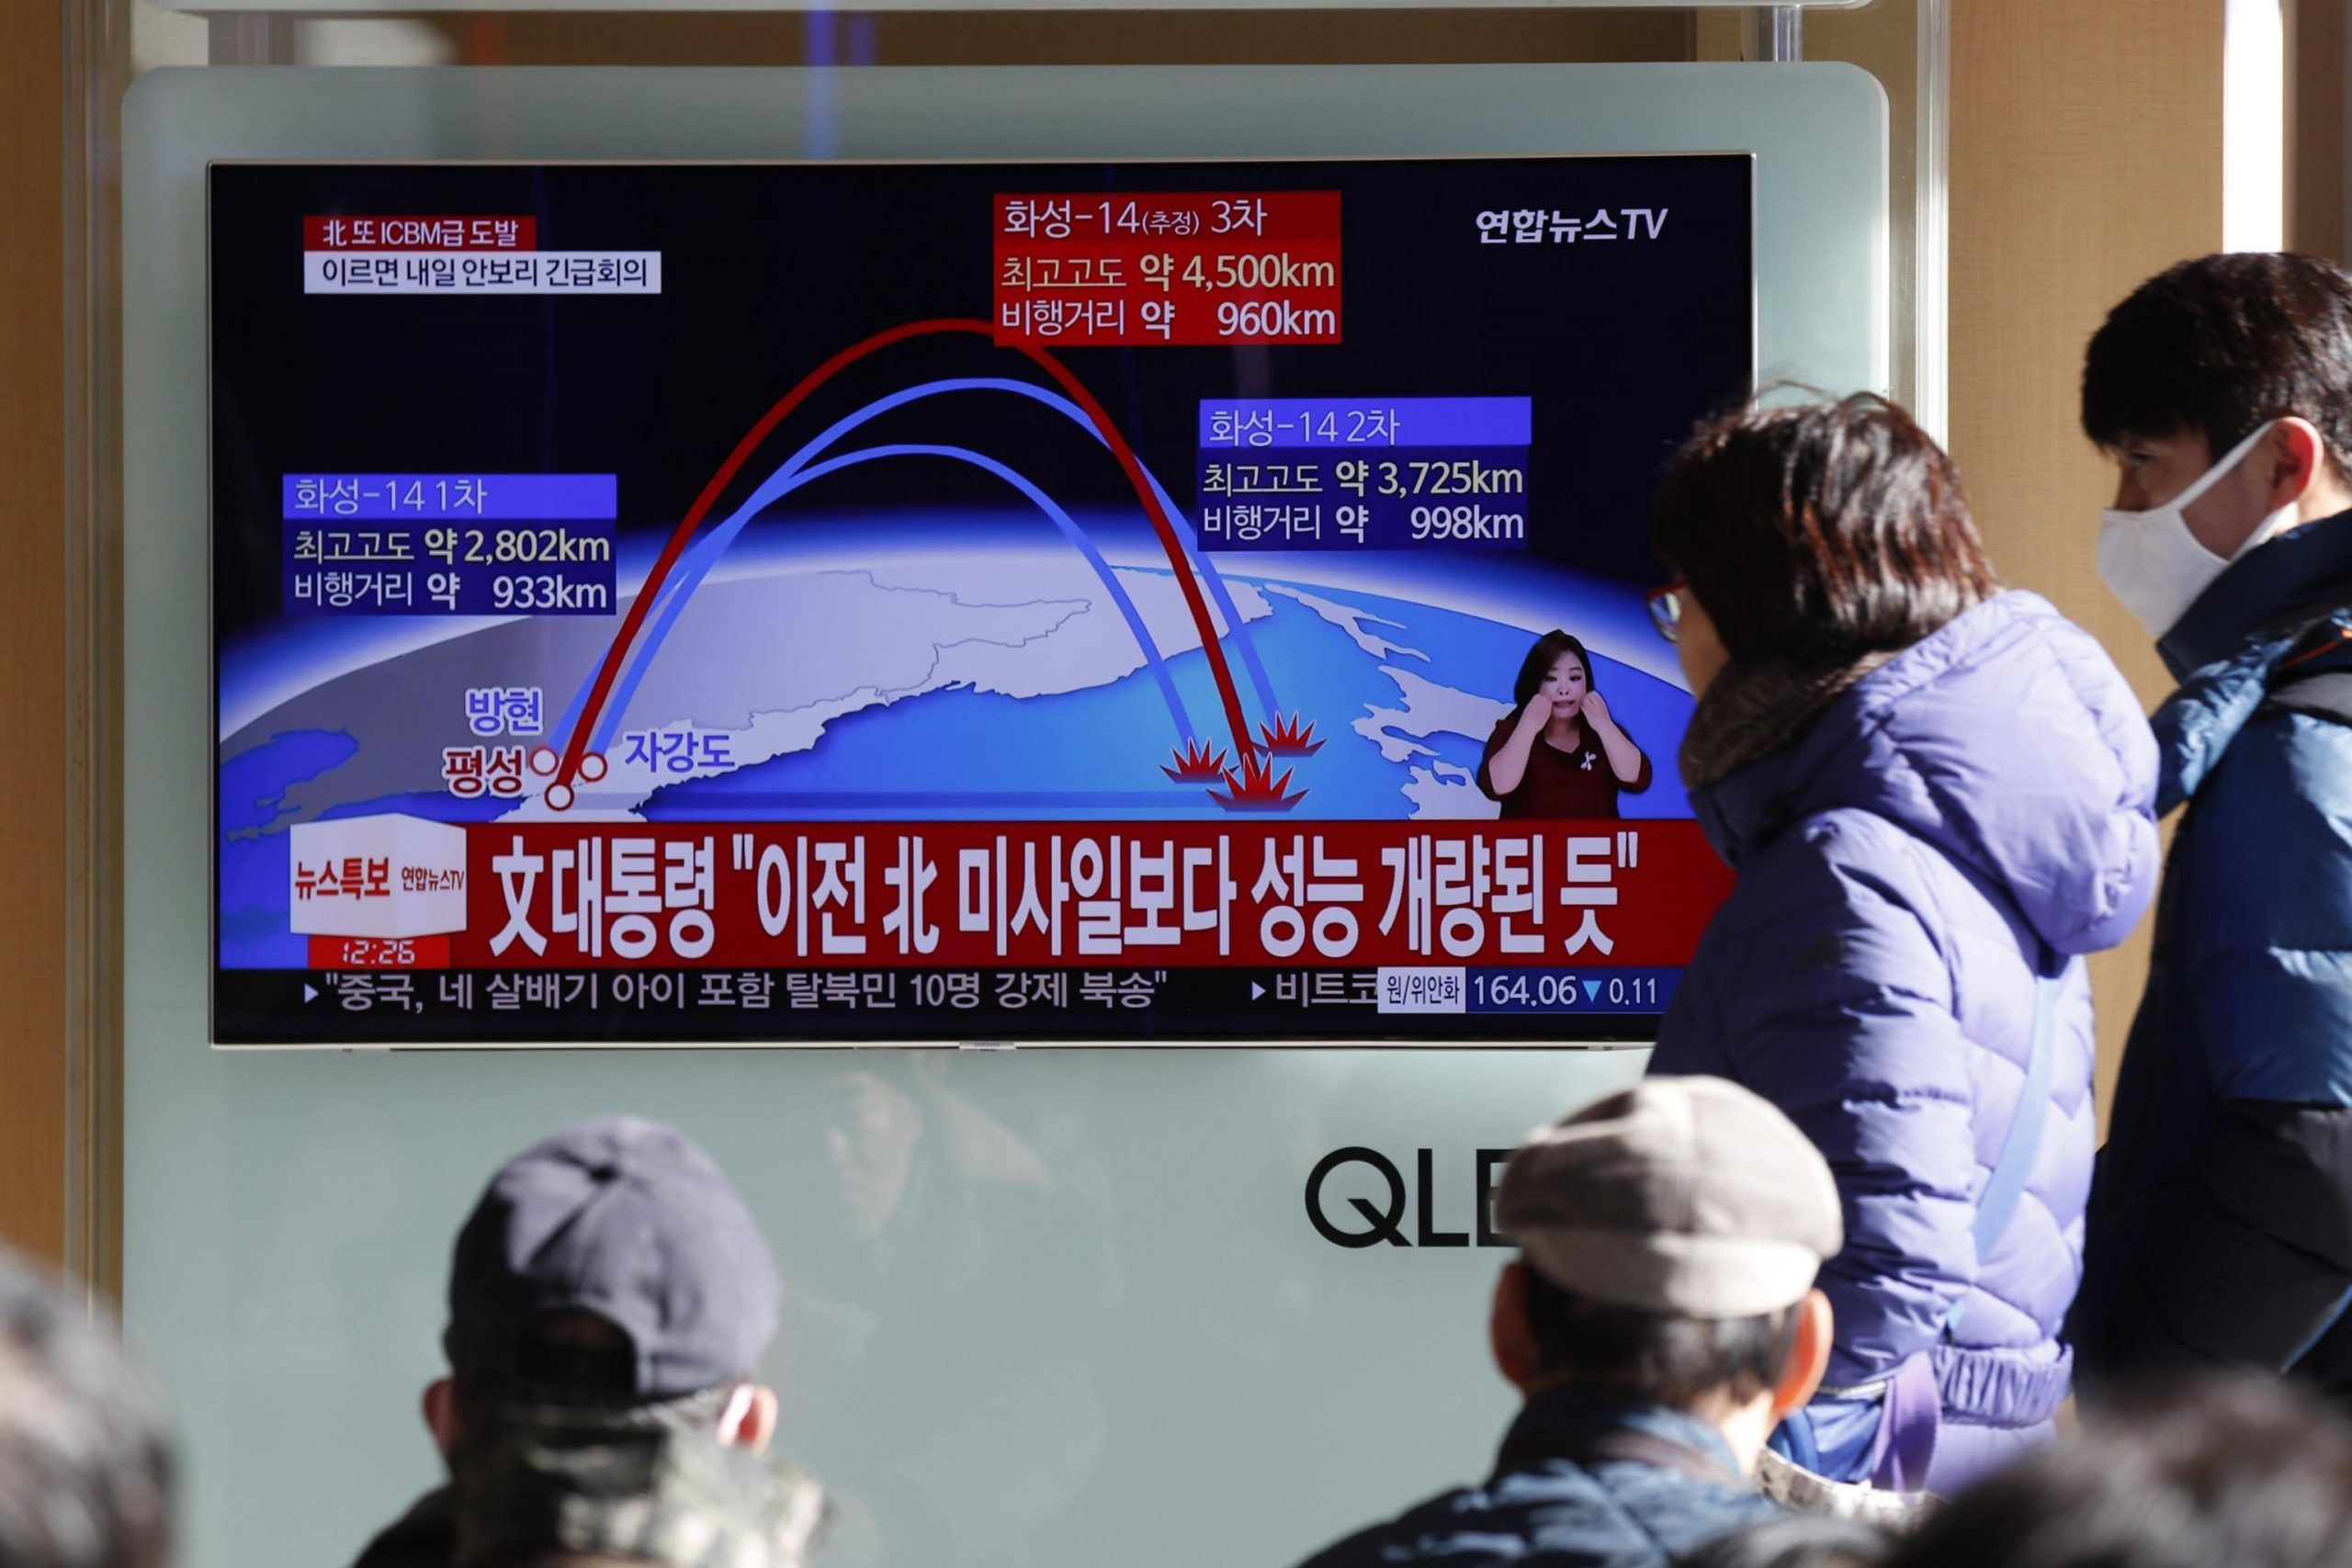 North Korea launches suspected ICBM into Sea of Japan